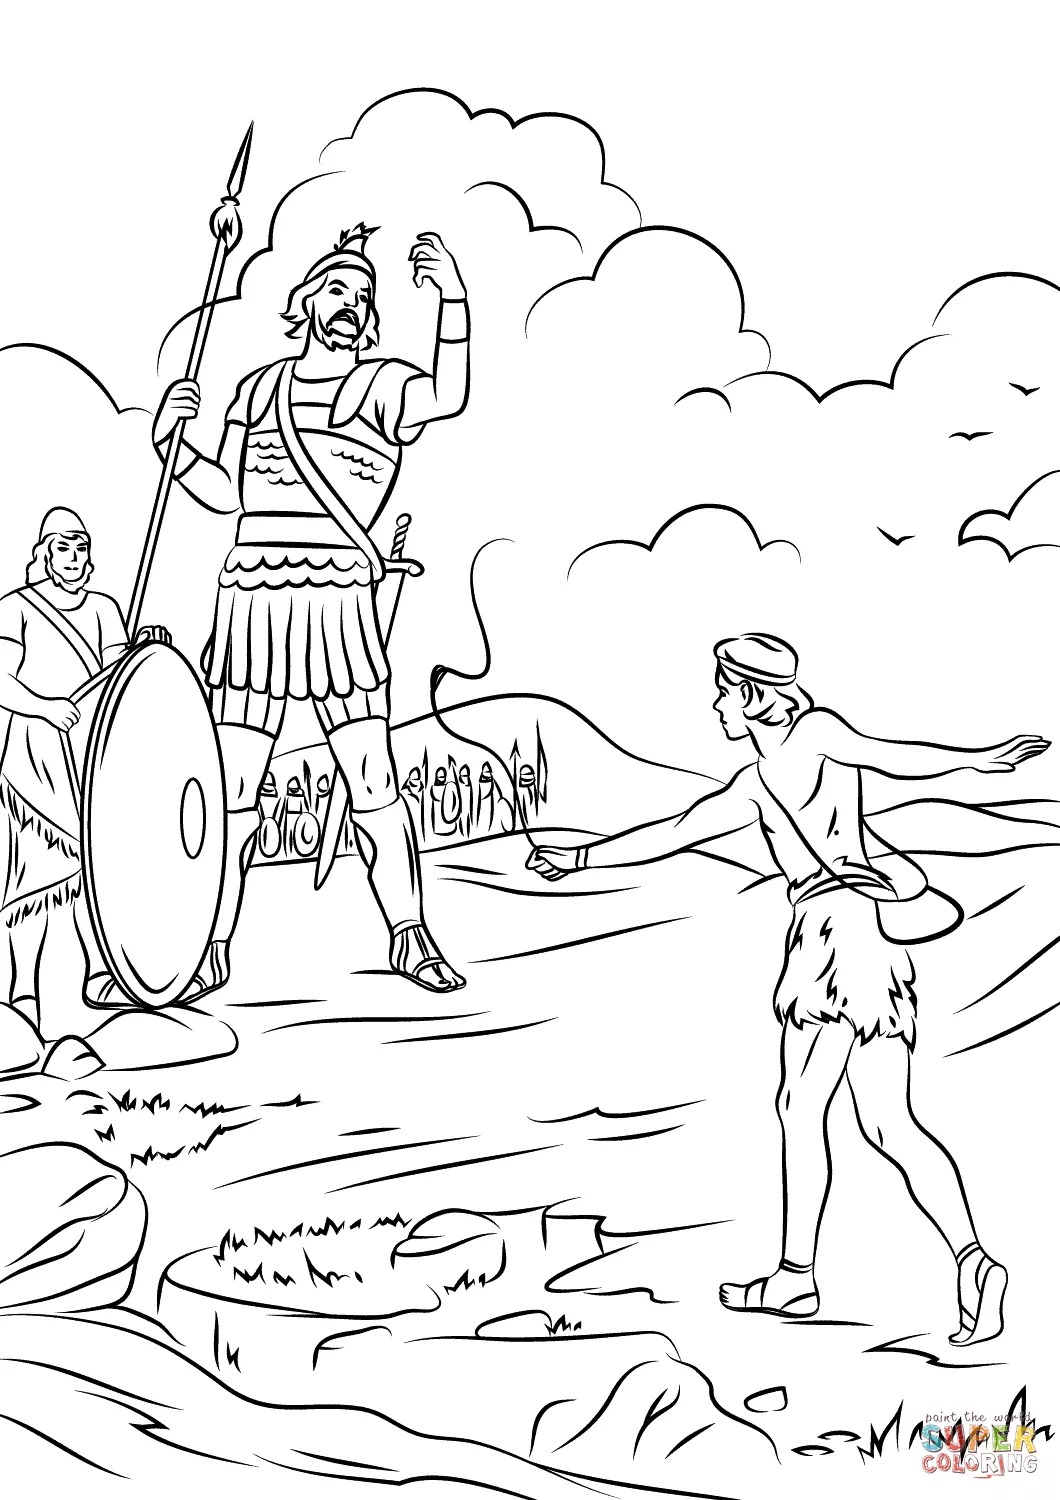 The Best Free Goliath Coloring Page Images Download From